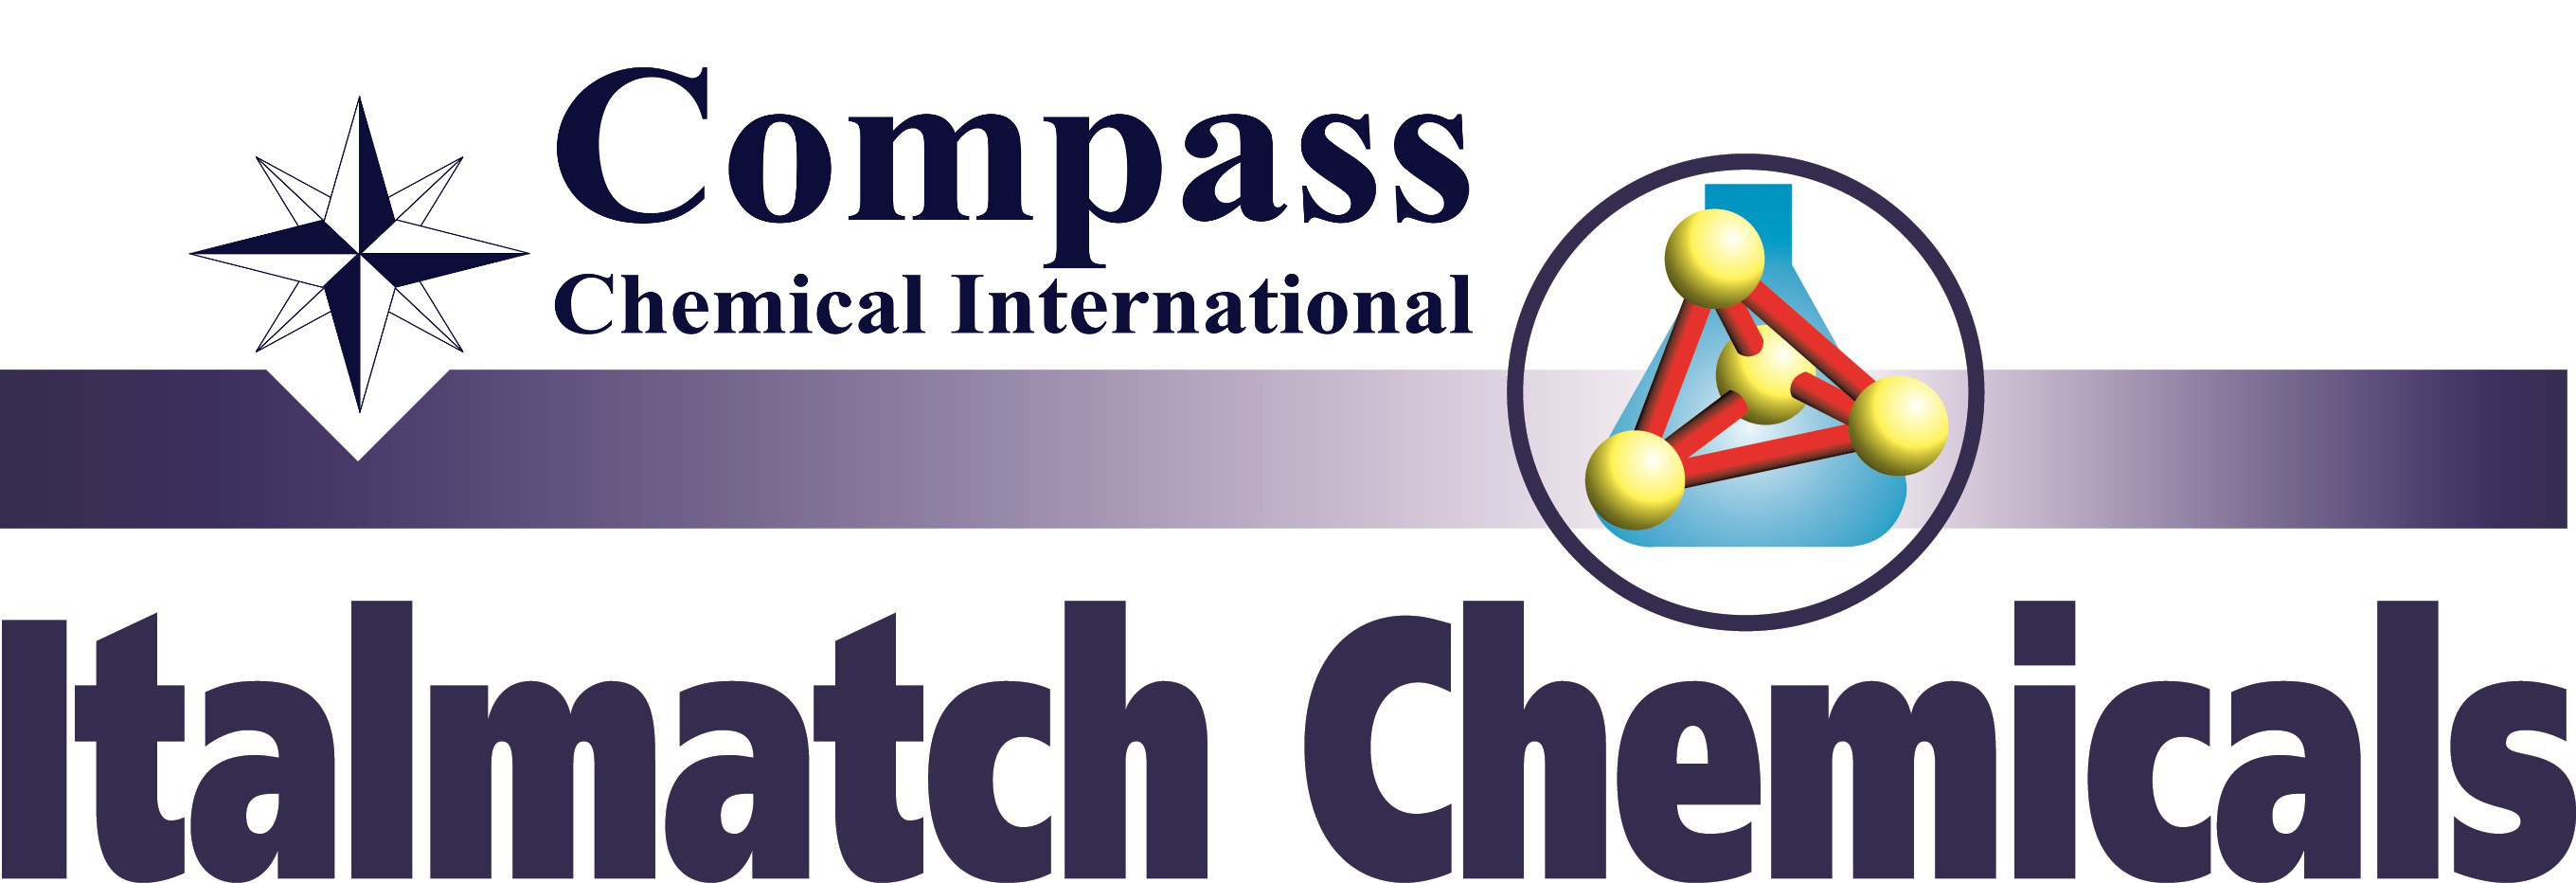 Compass Chemical